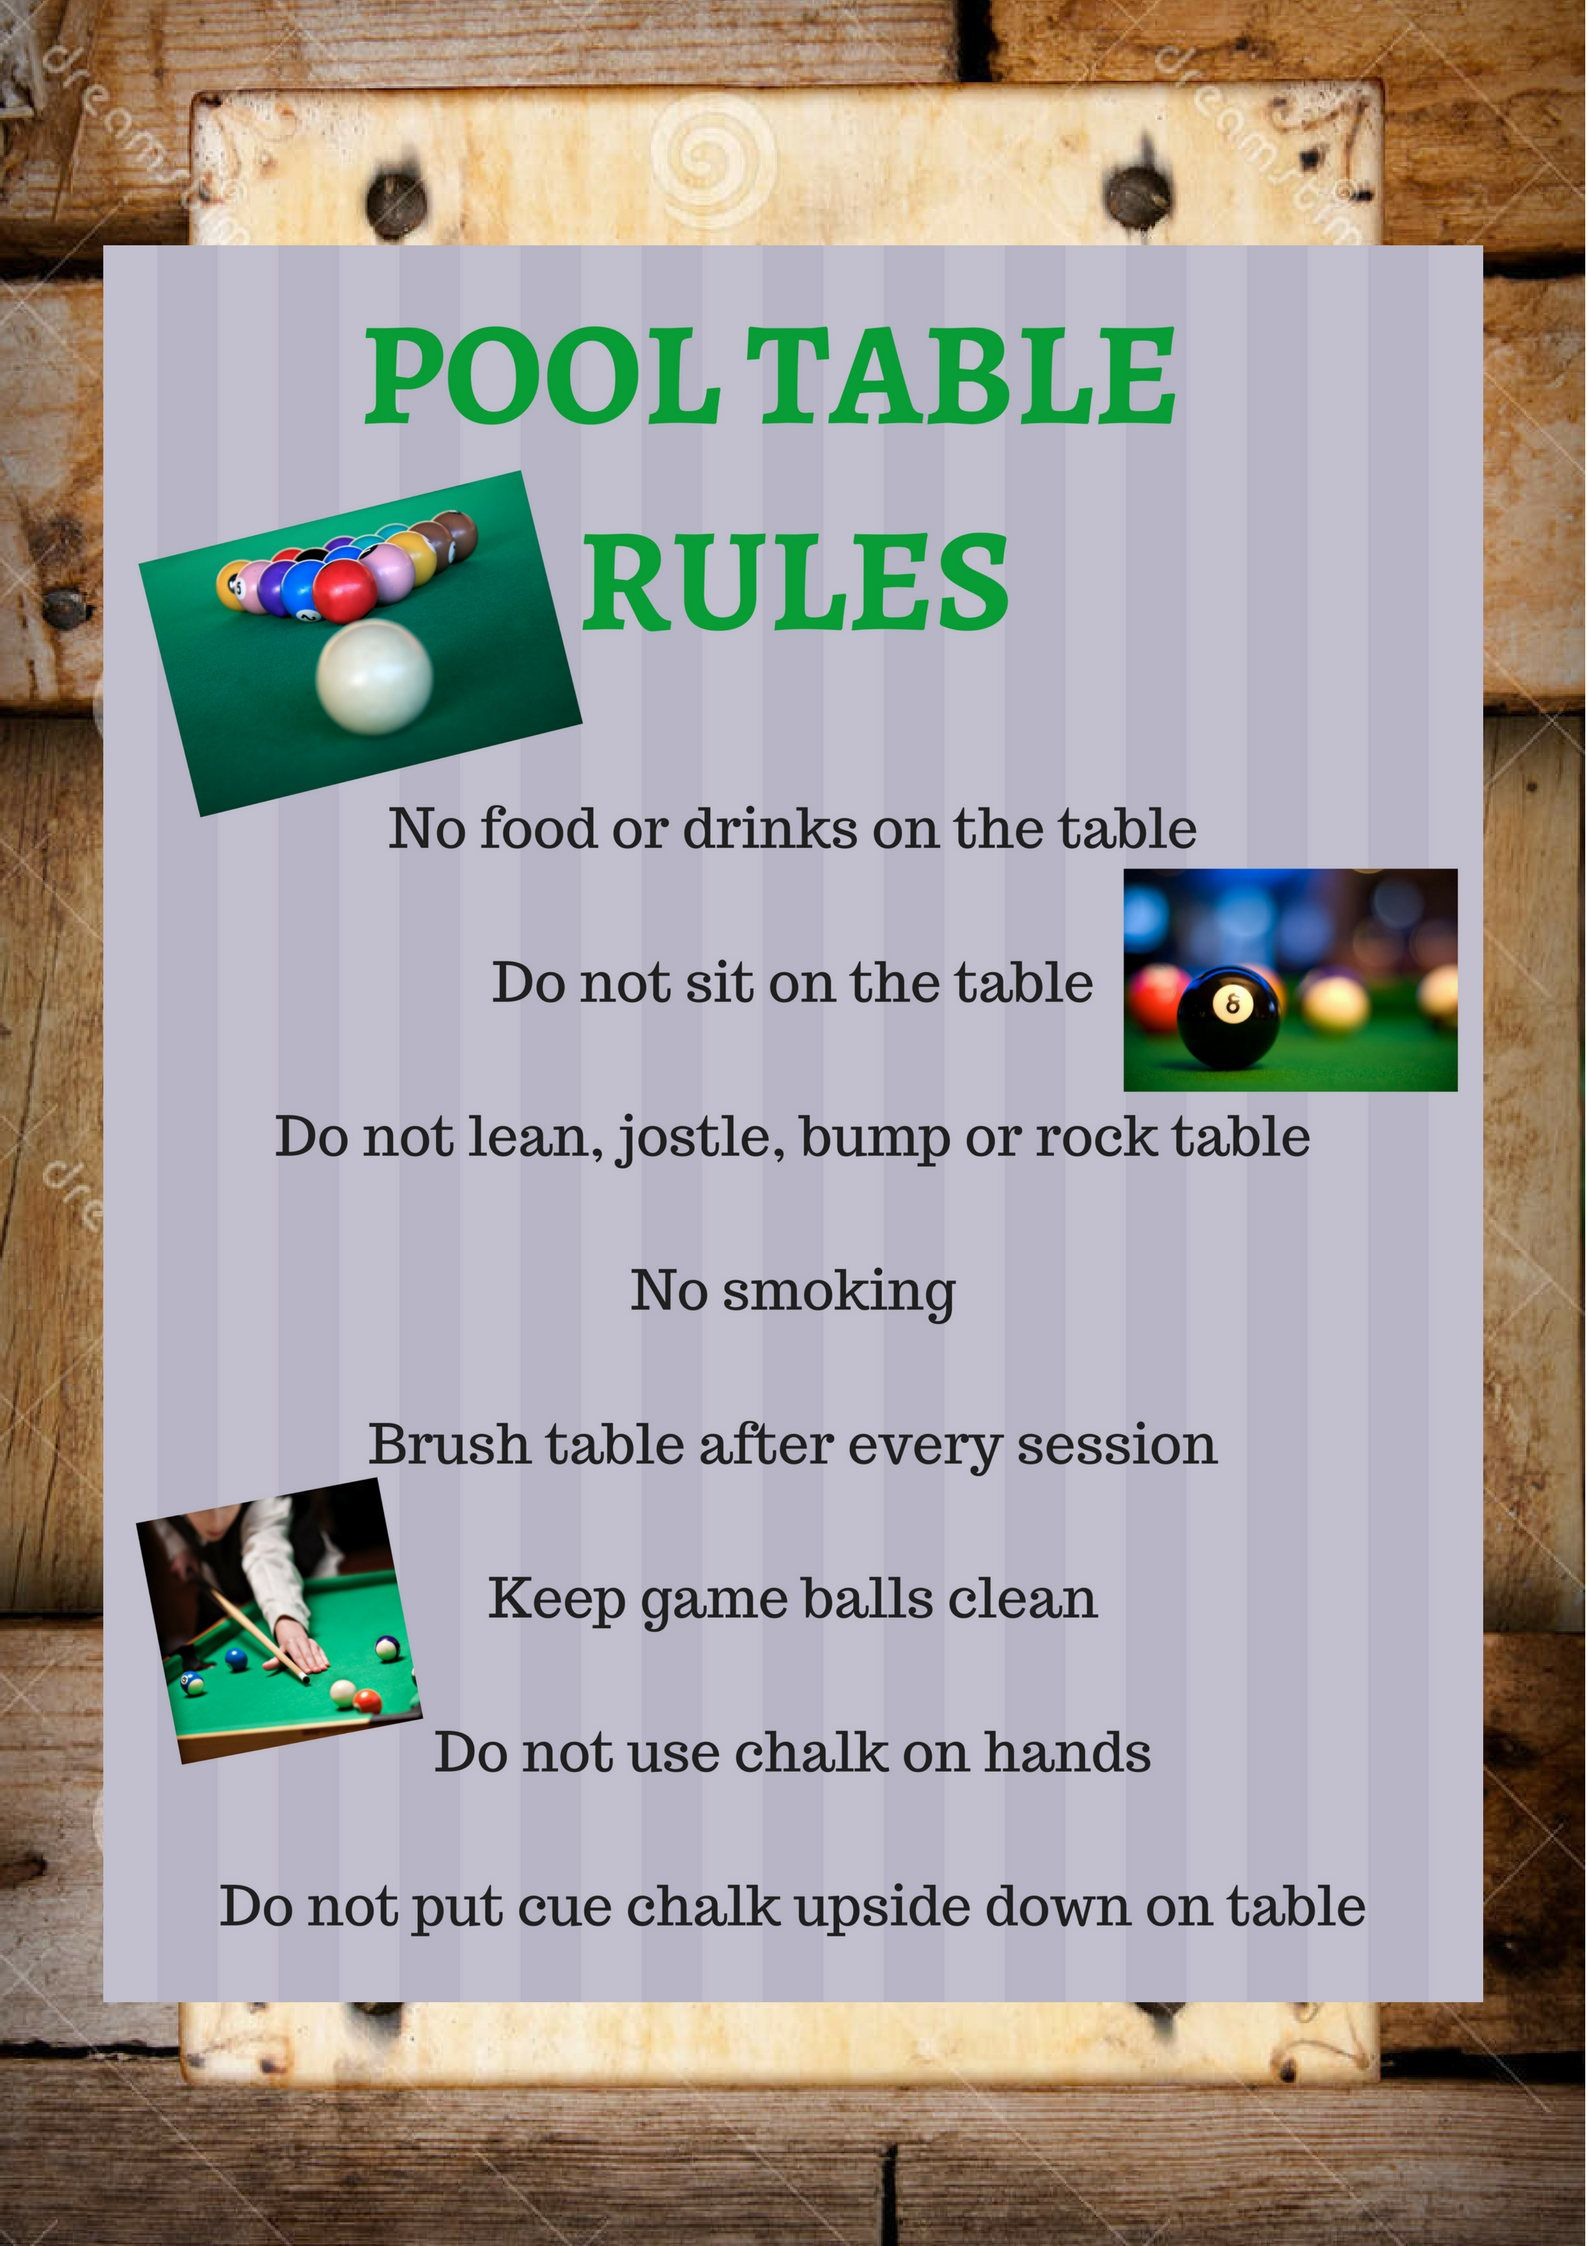 pool table rules instant download billiards maceyyvonne prints rh pinterest com pool table rules uk pool table rules scratch